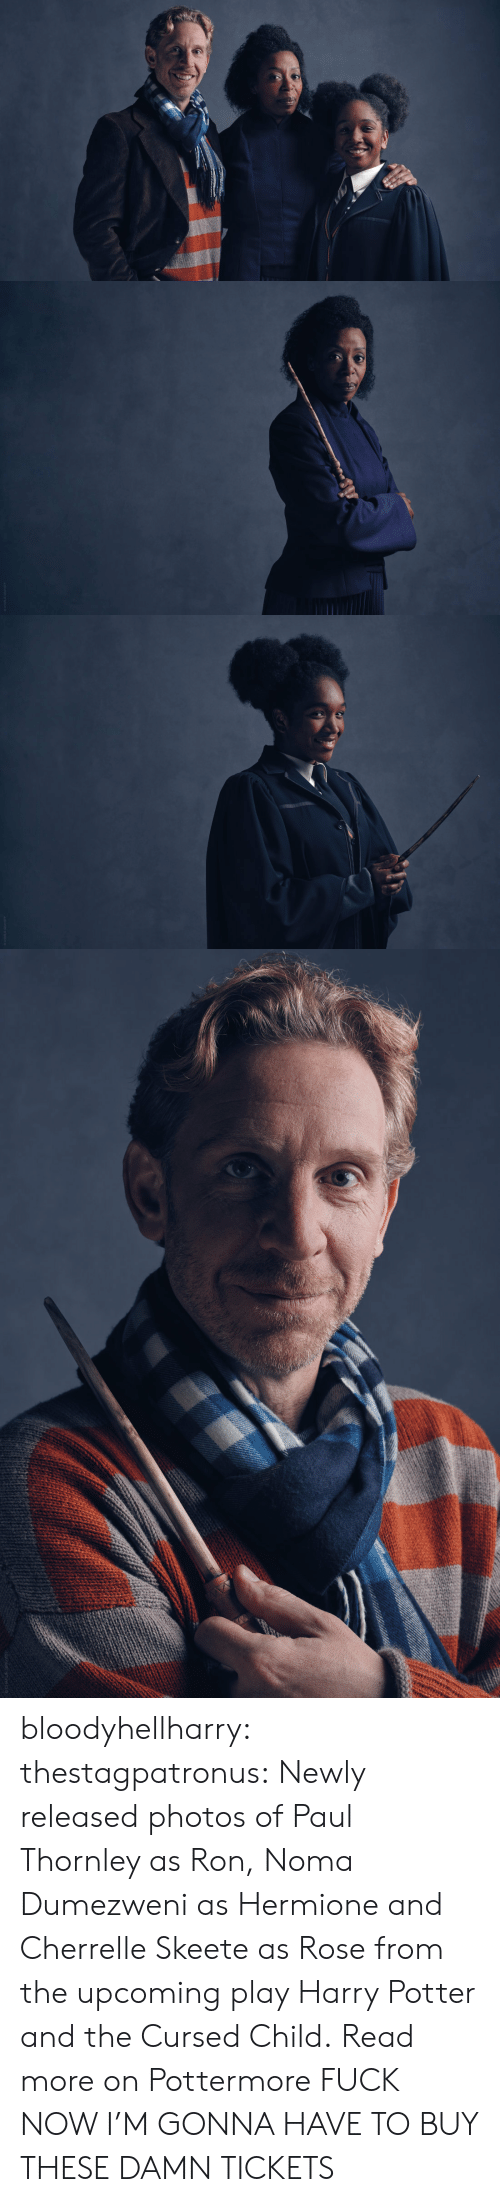 Harry Potter And The Cursed Child: bloodyhellharry:  thestagpatronus: Newly released photos of Paul Thornley as Ron, Noma Dumezweni as Hermione and Cherrelle Skeete as Rose from the upcoming play Harry Potter and the Cursed Child. Read more on Pottermore  FUCK NOW I'M GONNA HAVE TO BUY THESE DAMN TICKETS